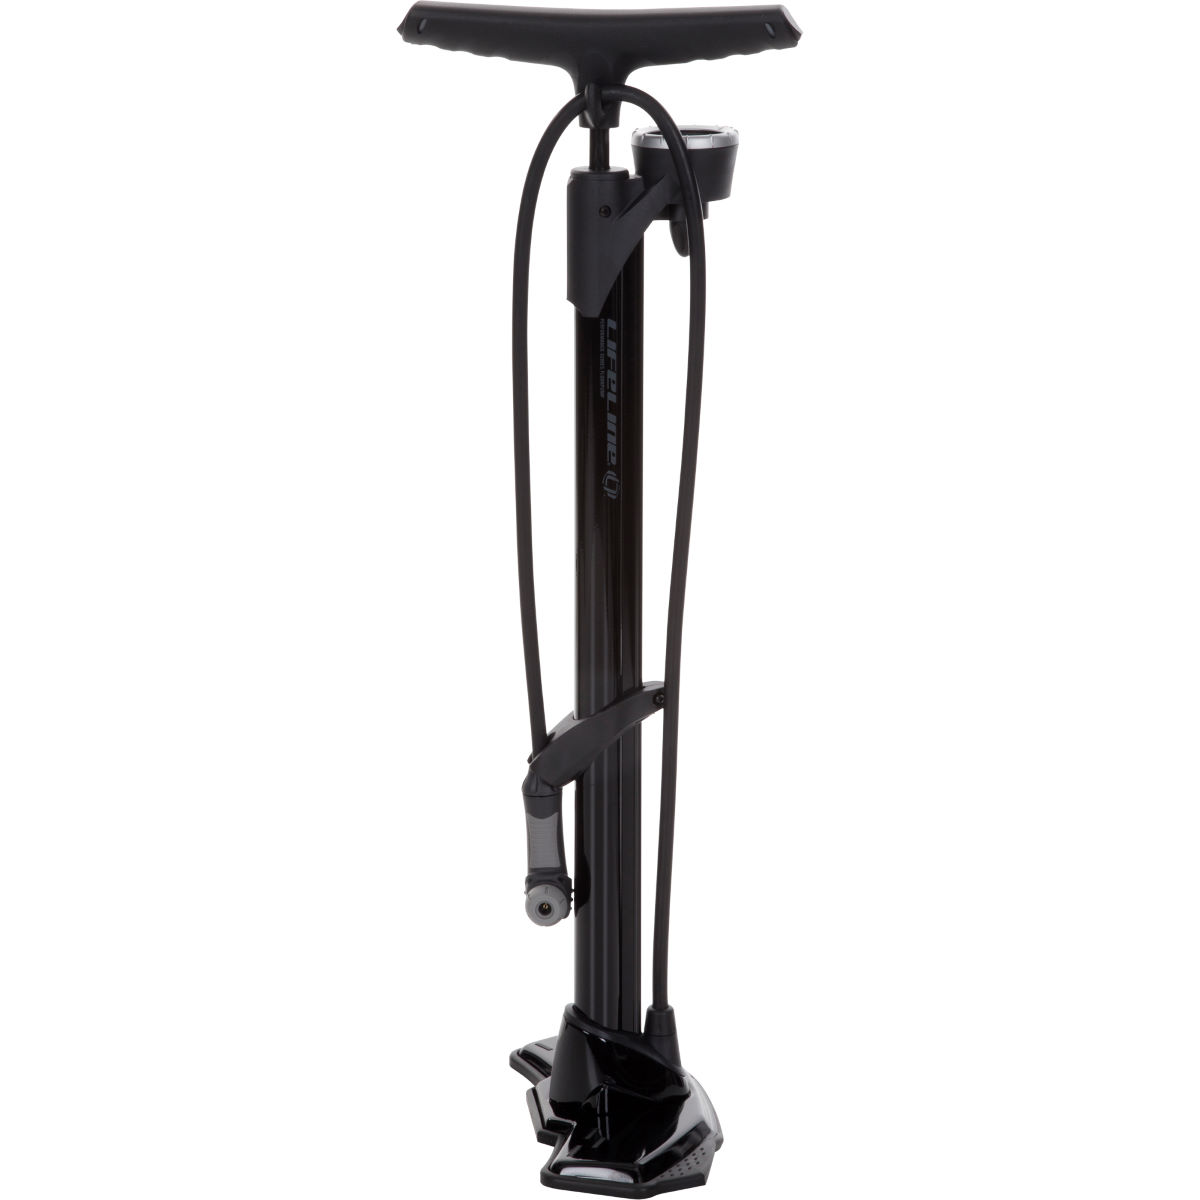 LifeLine Performance High Pressure Floor Pump